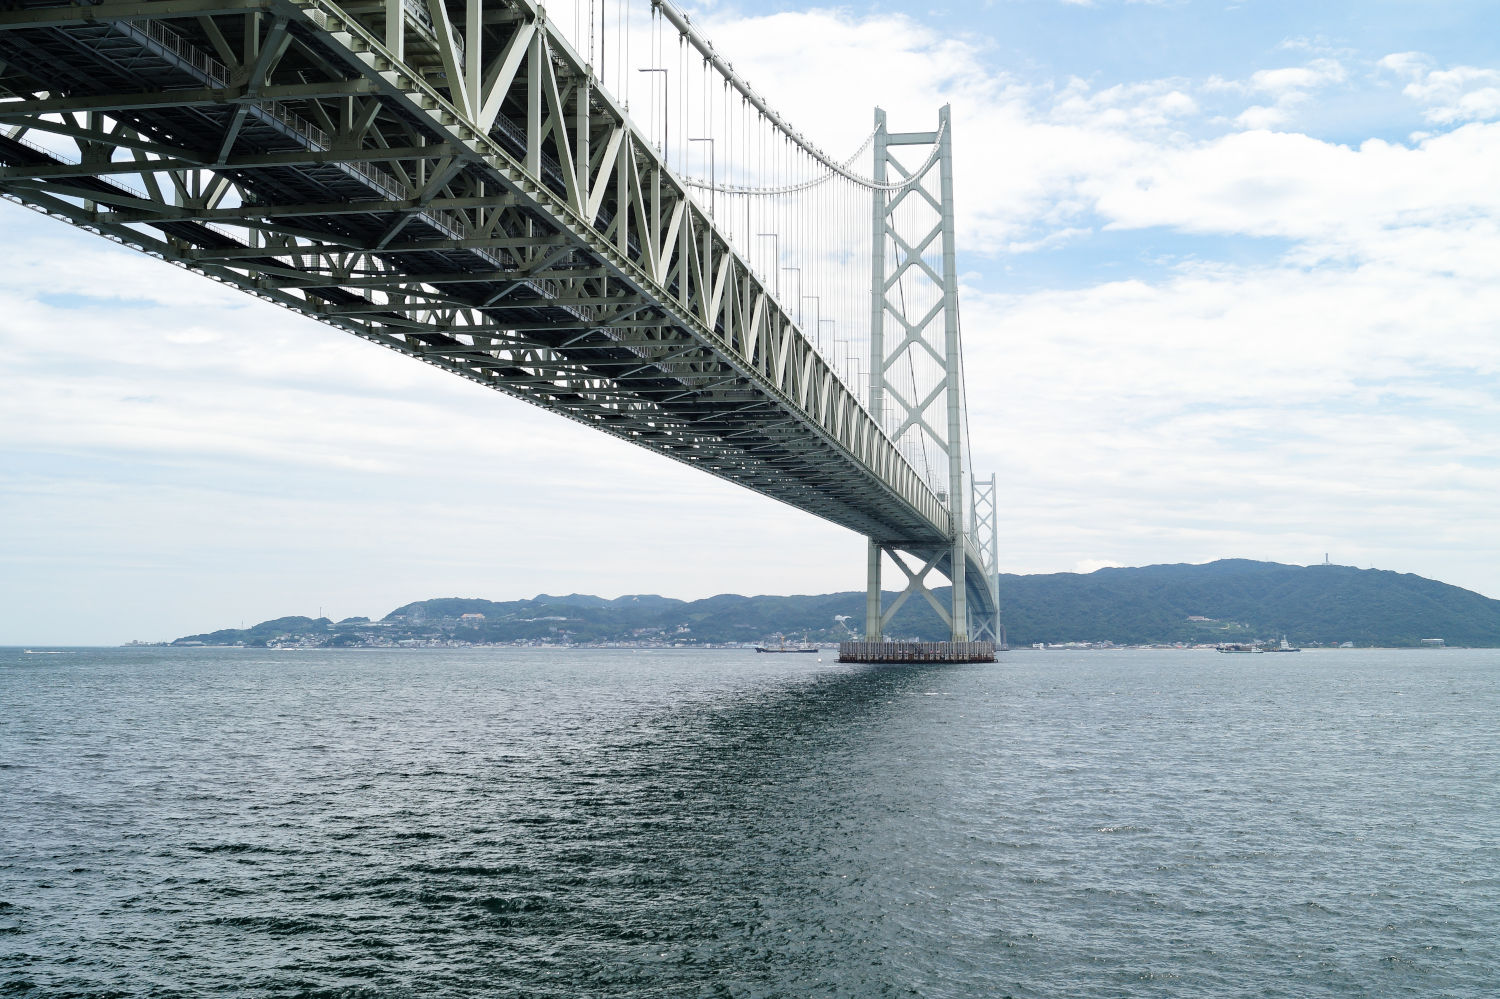 Akashi Kaikyô Bridge